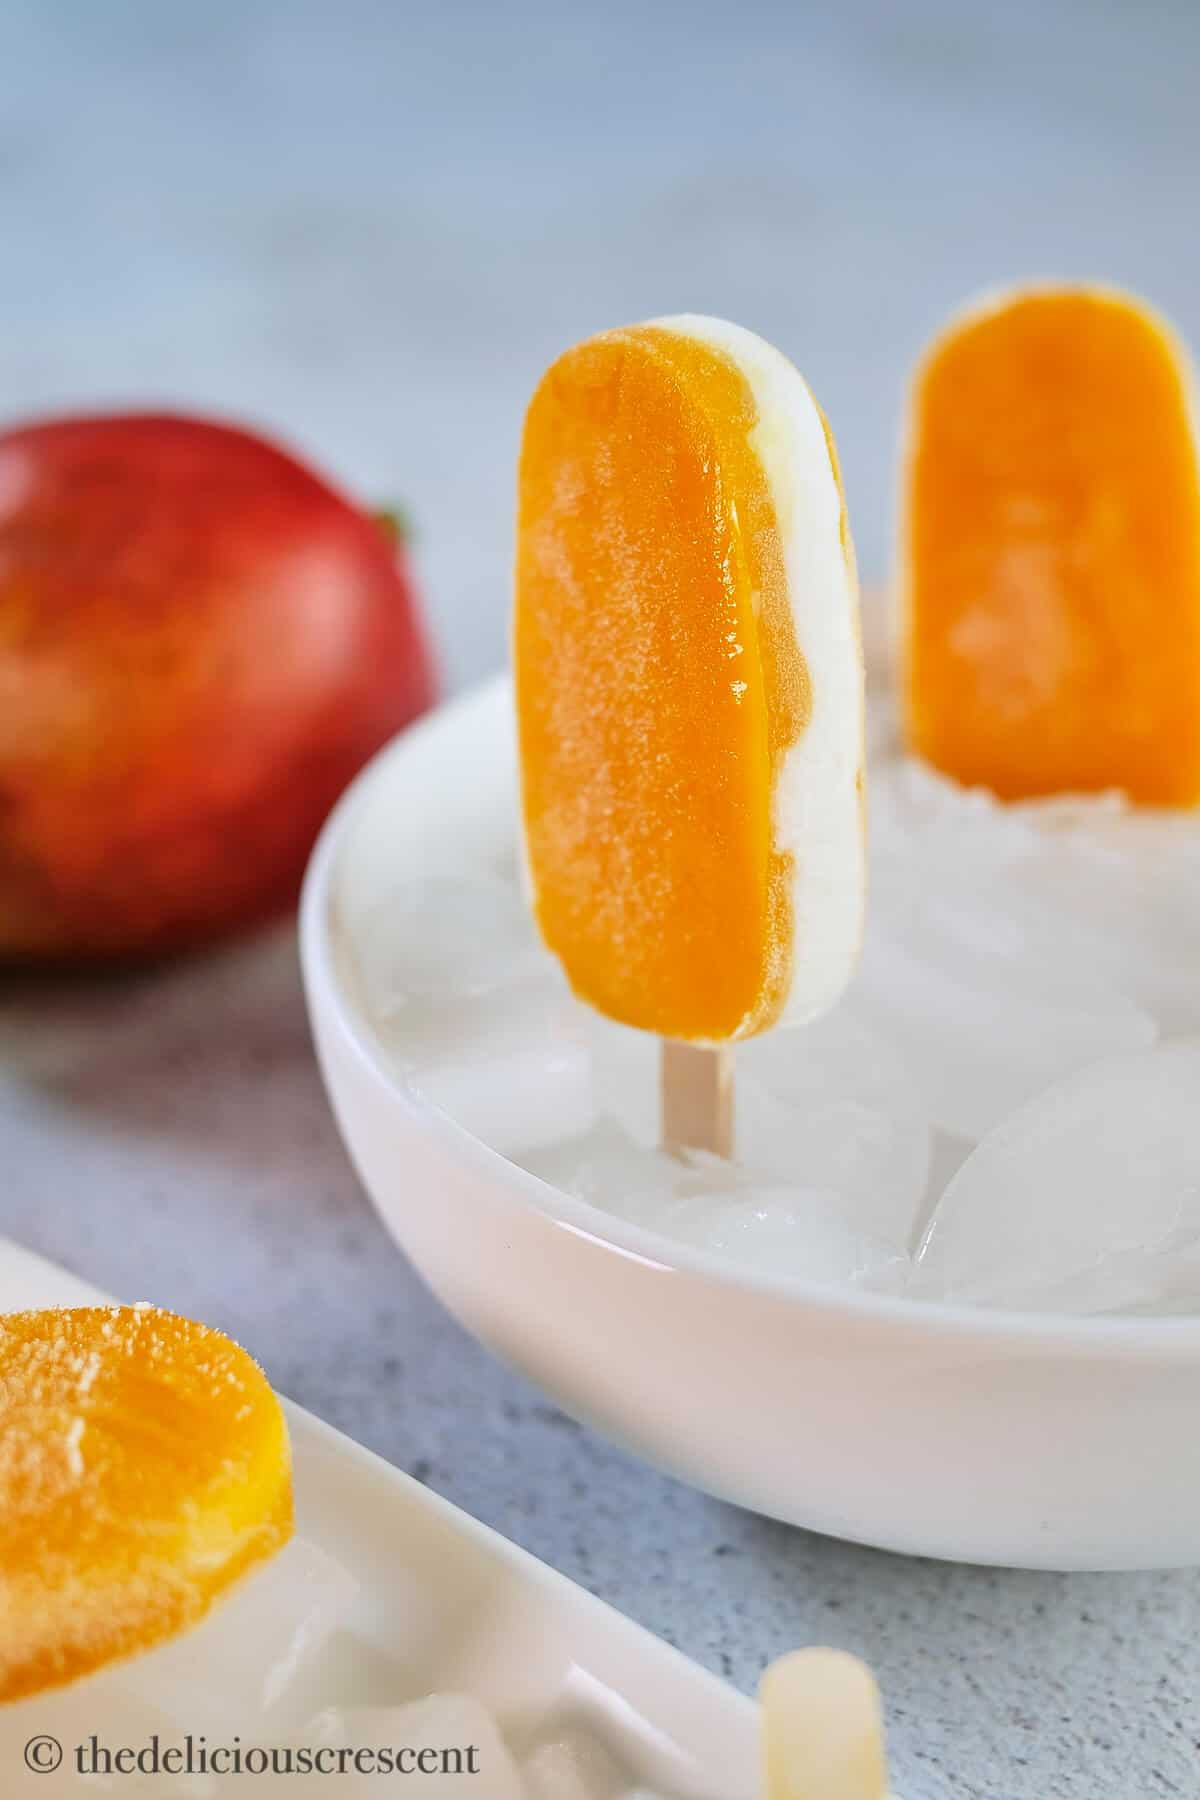 Creamy vanilla filling in the middle of two mango layers in an ice pop.